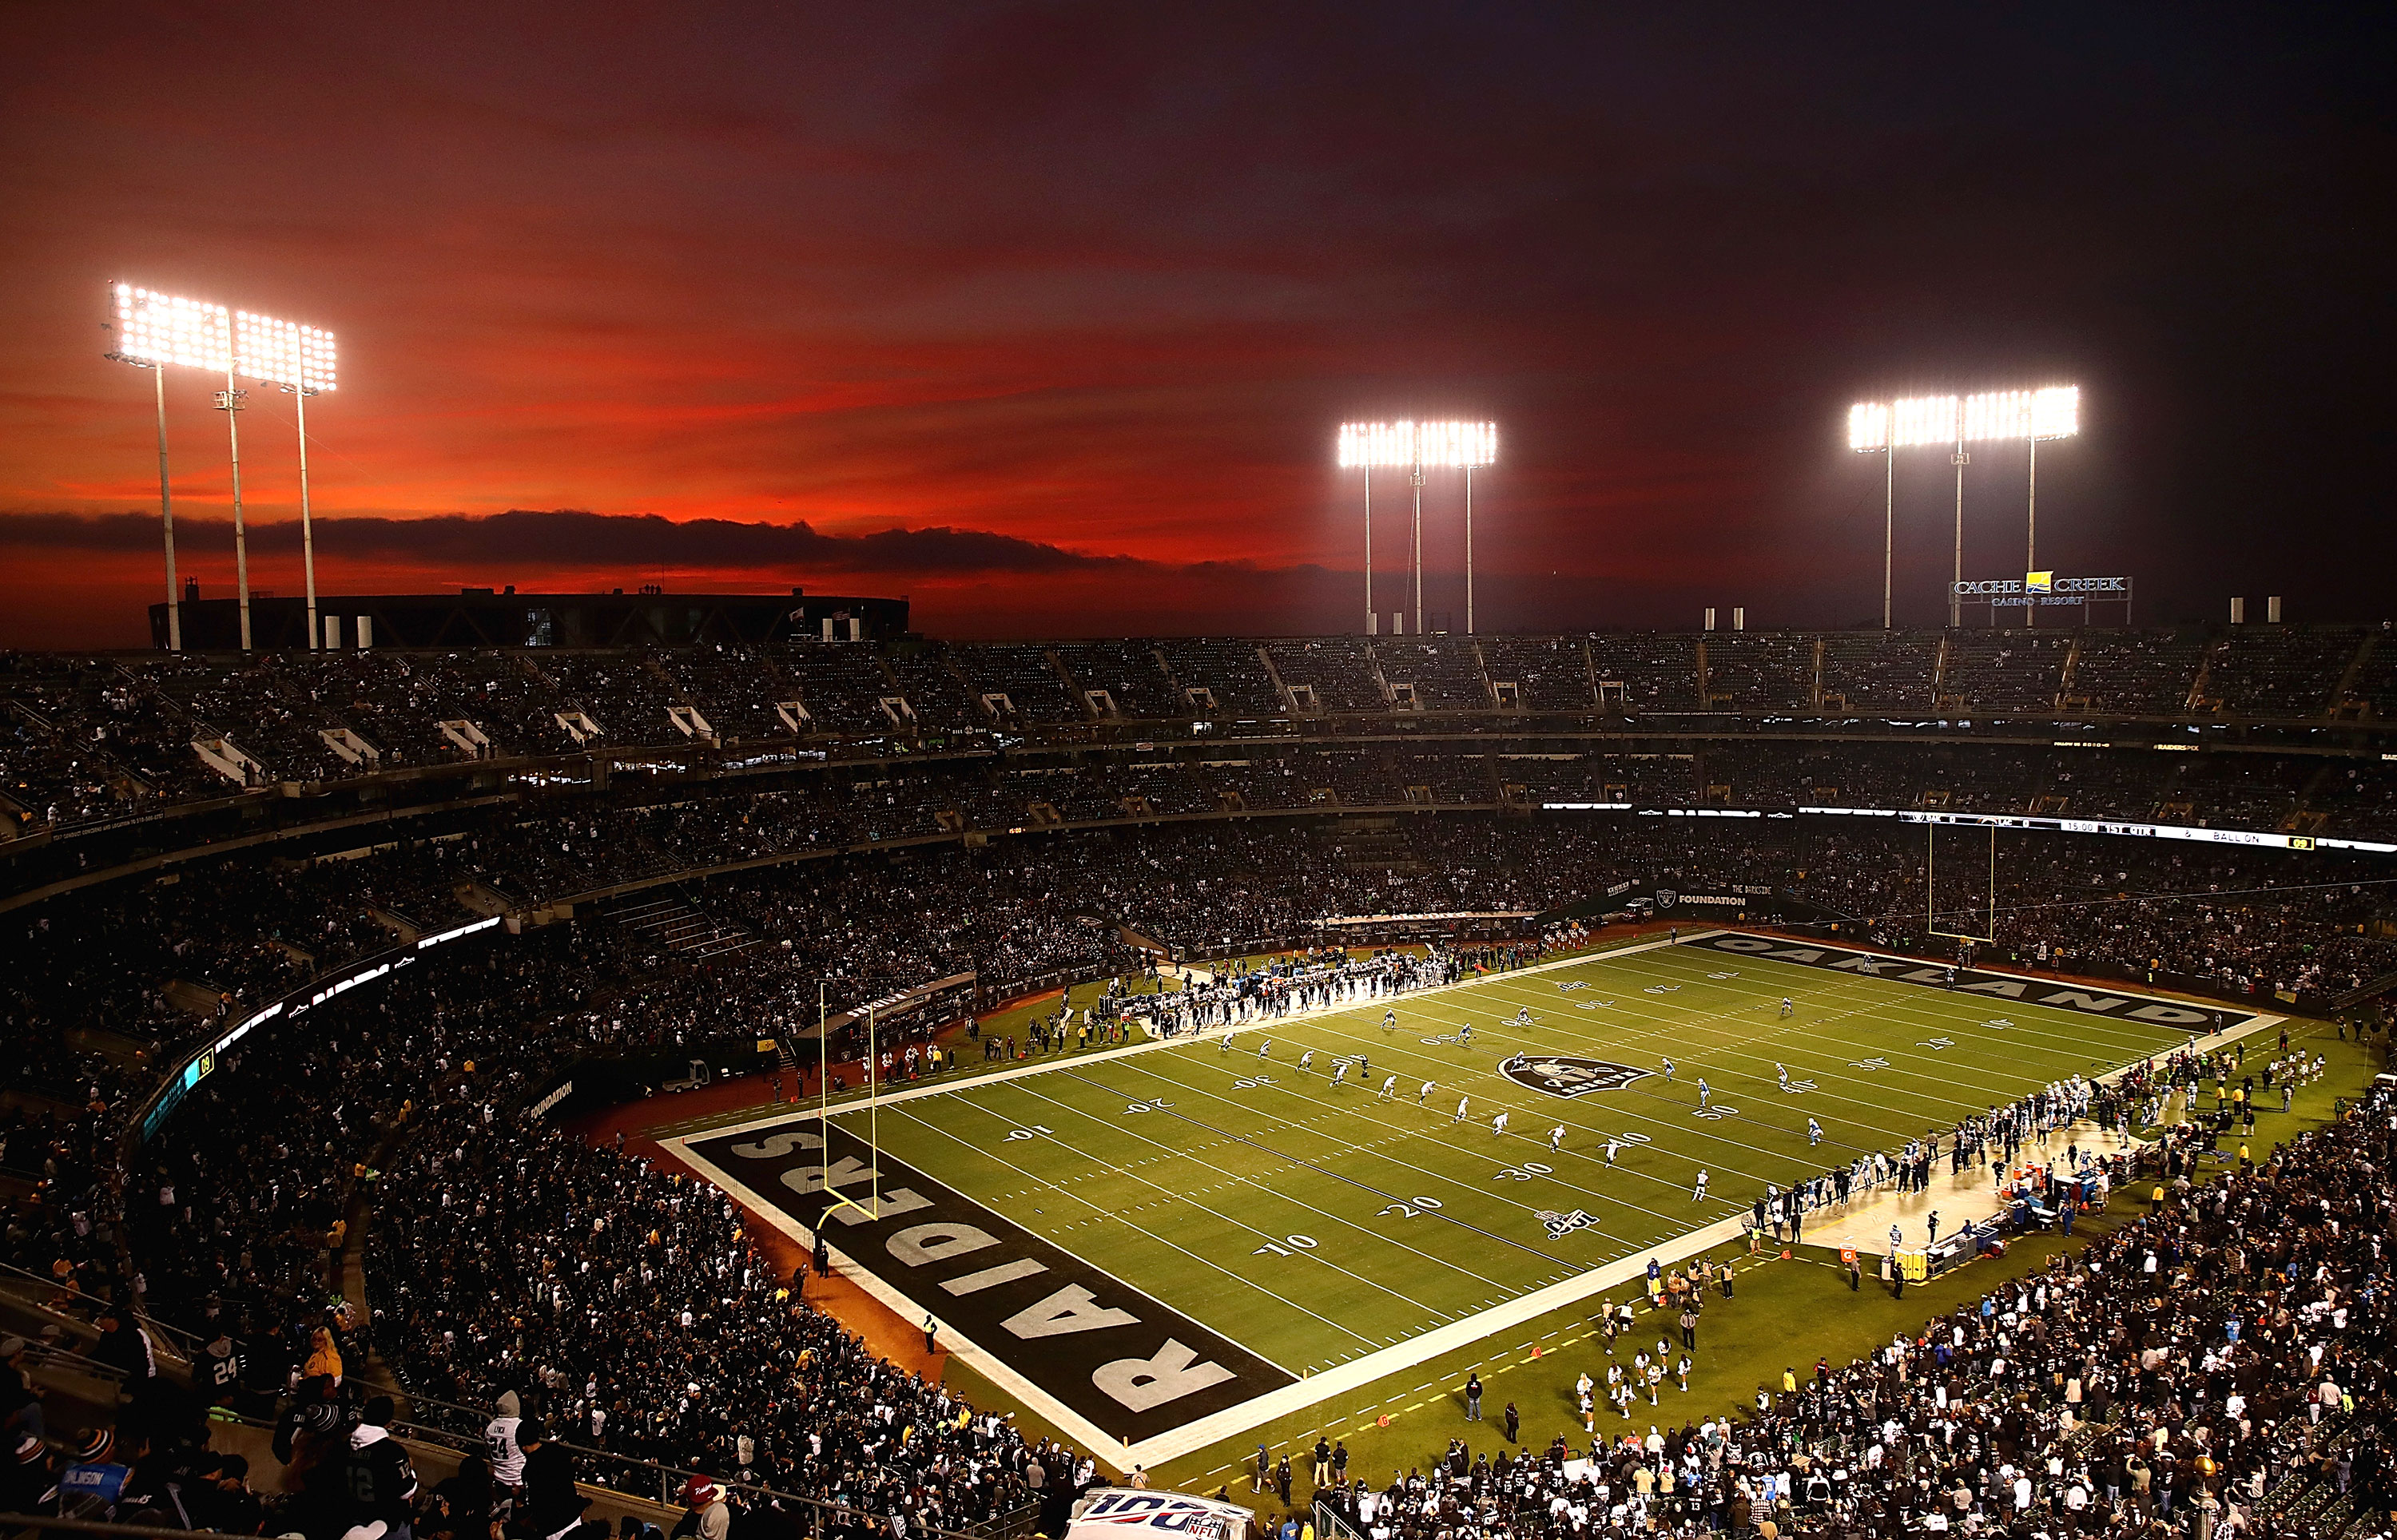 Raiders to play final game in Oakland Coliseum